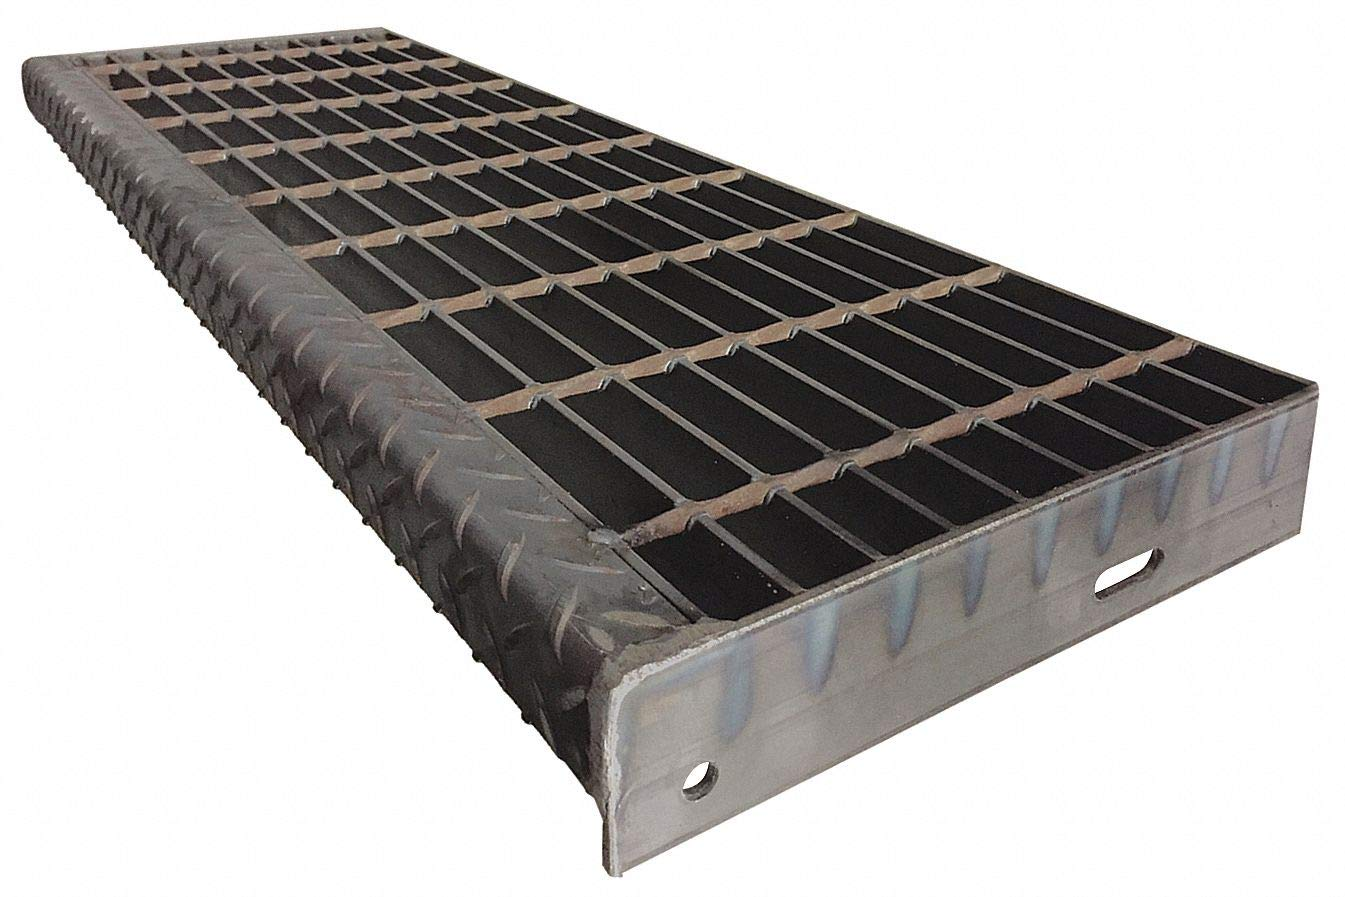 Carbon Steel Smooth Surface Bar Grating Stair Tread, 36'' Width, 9.75'' Depth, 2'' Height